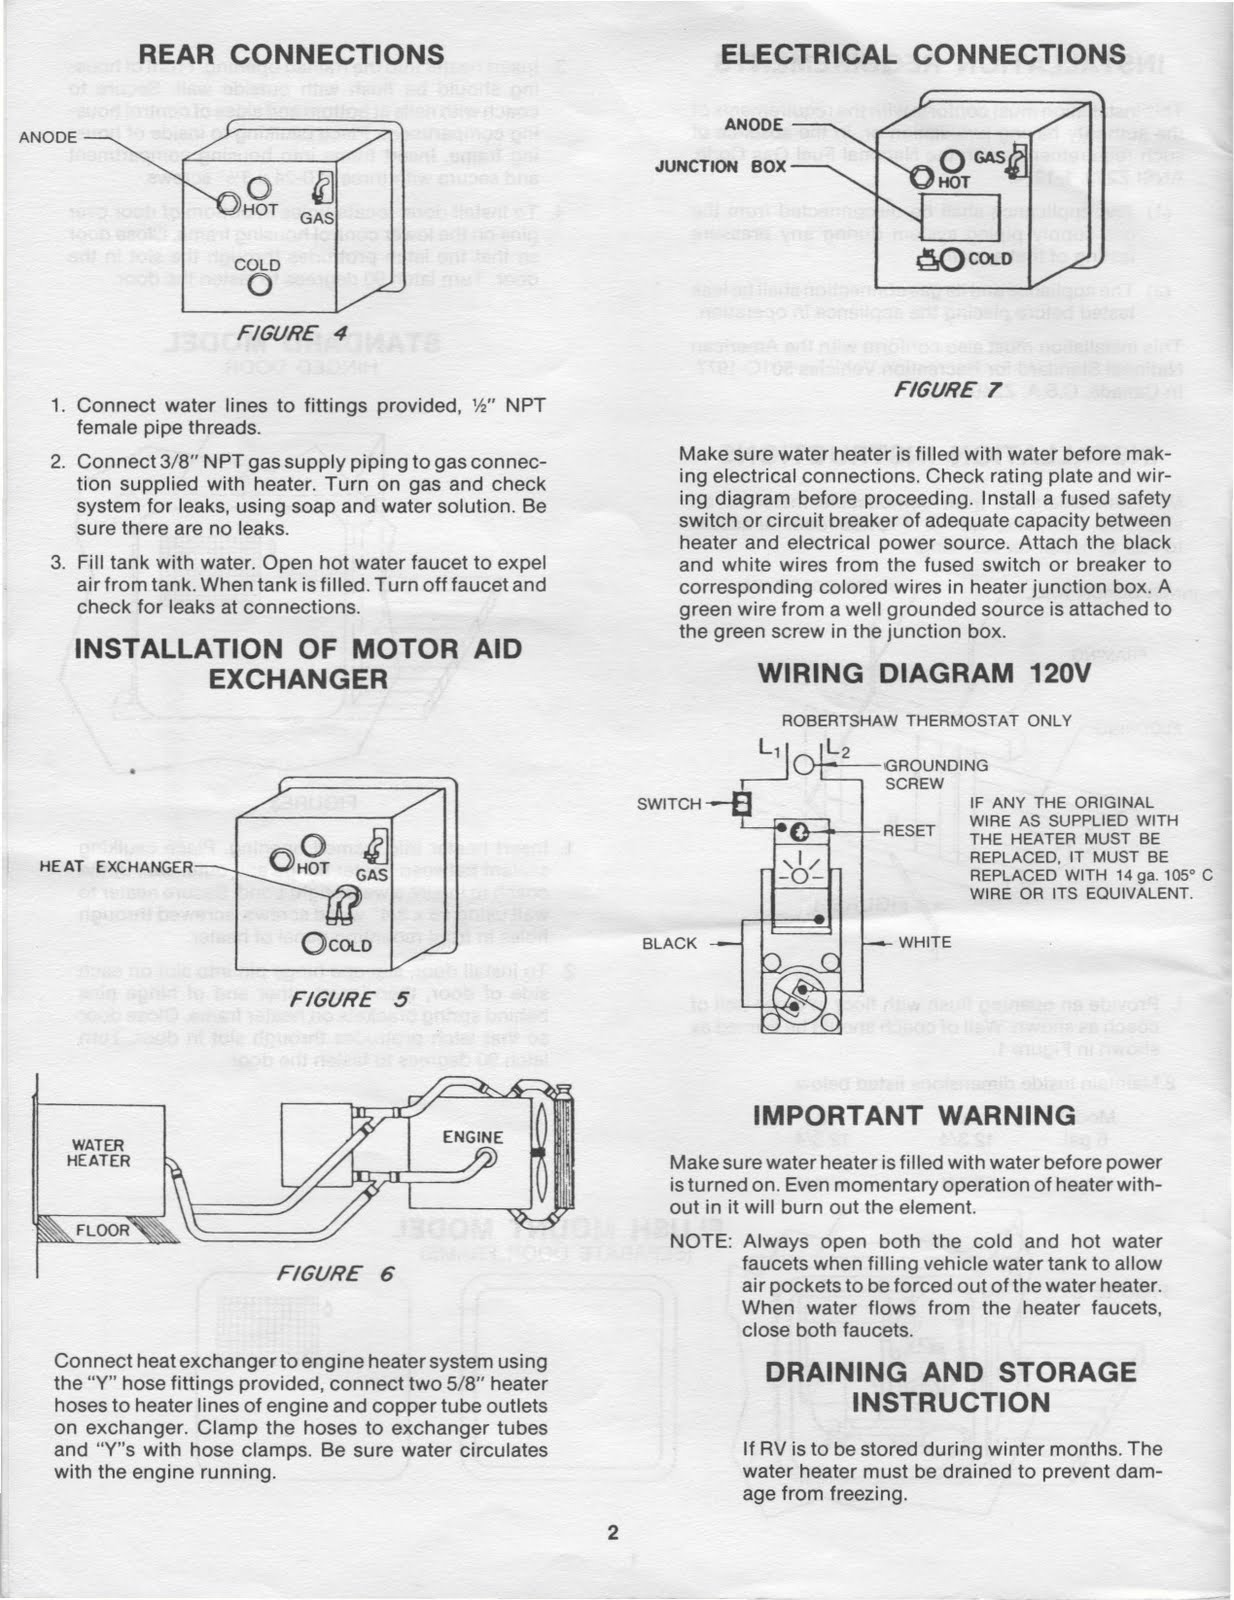 Fireball Motorhome Wiring Diagram Archive Of Automotive 1976 Dodge Sportsman Rv 1848 For 79 Rh Stockimages Us